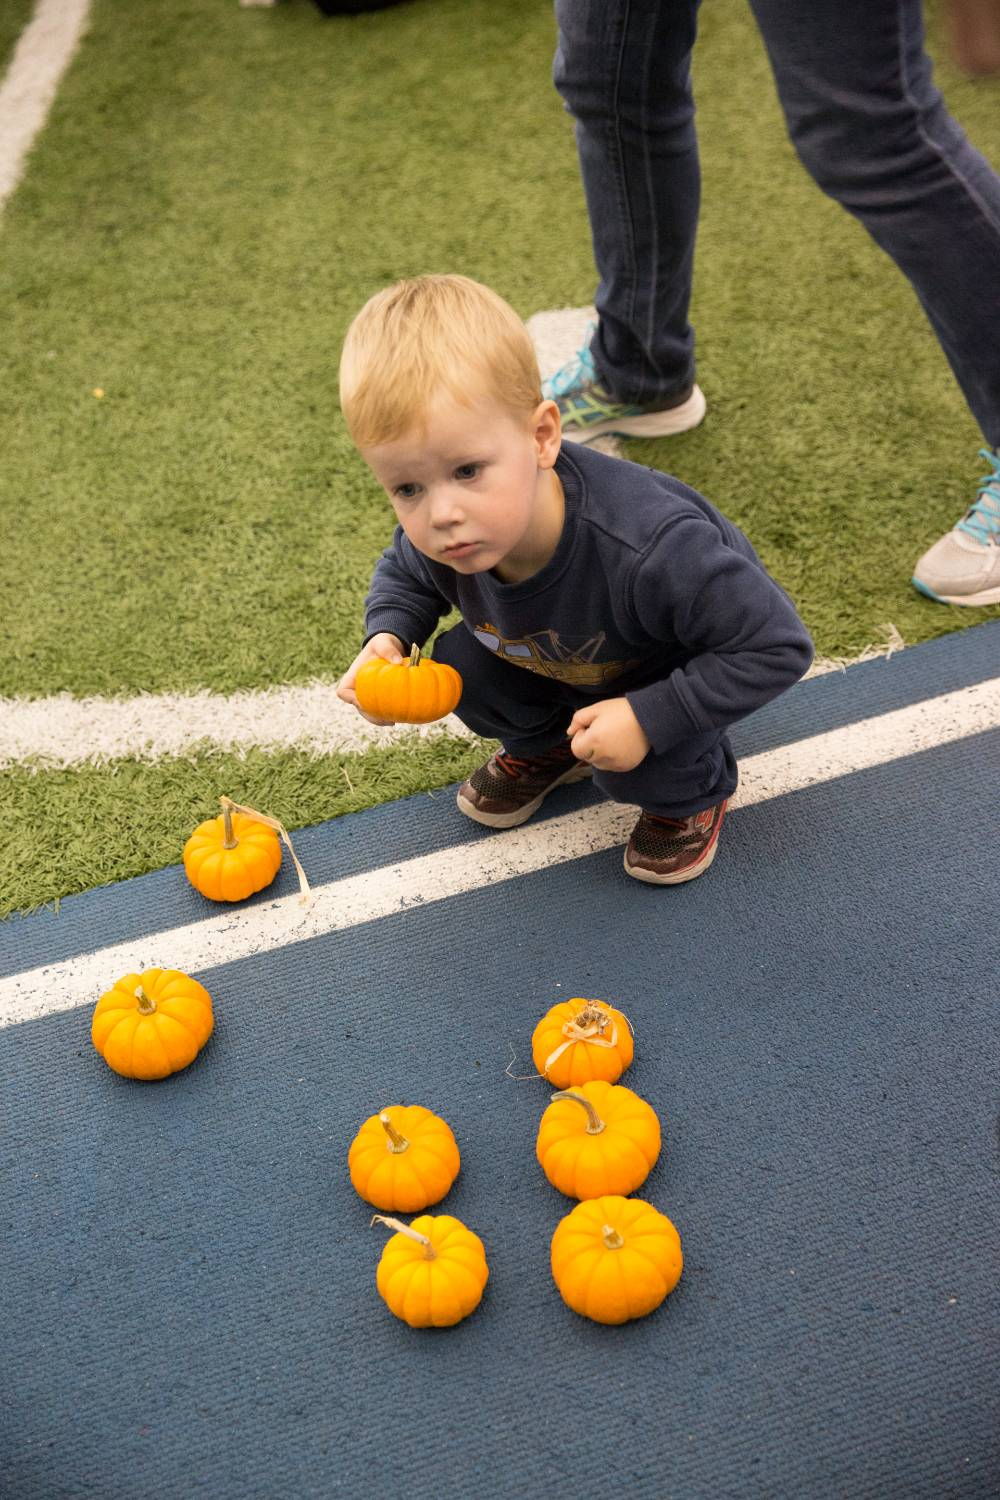 Little Laker poses with pumpkins